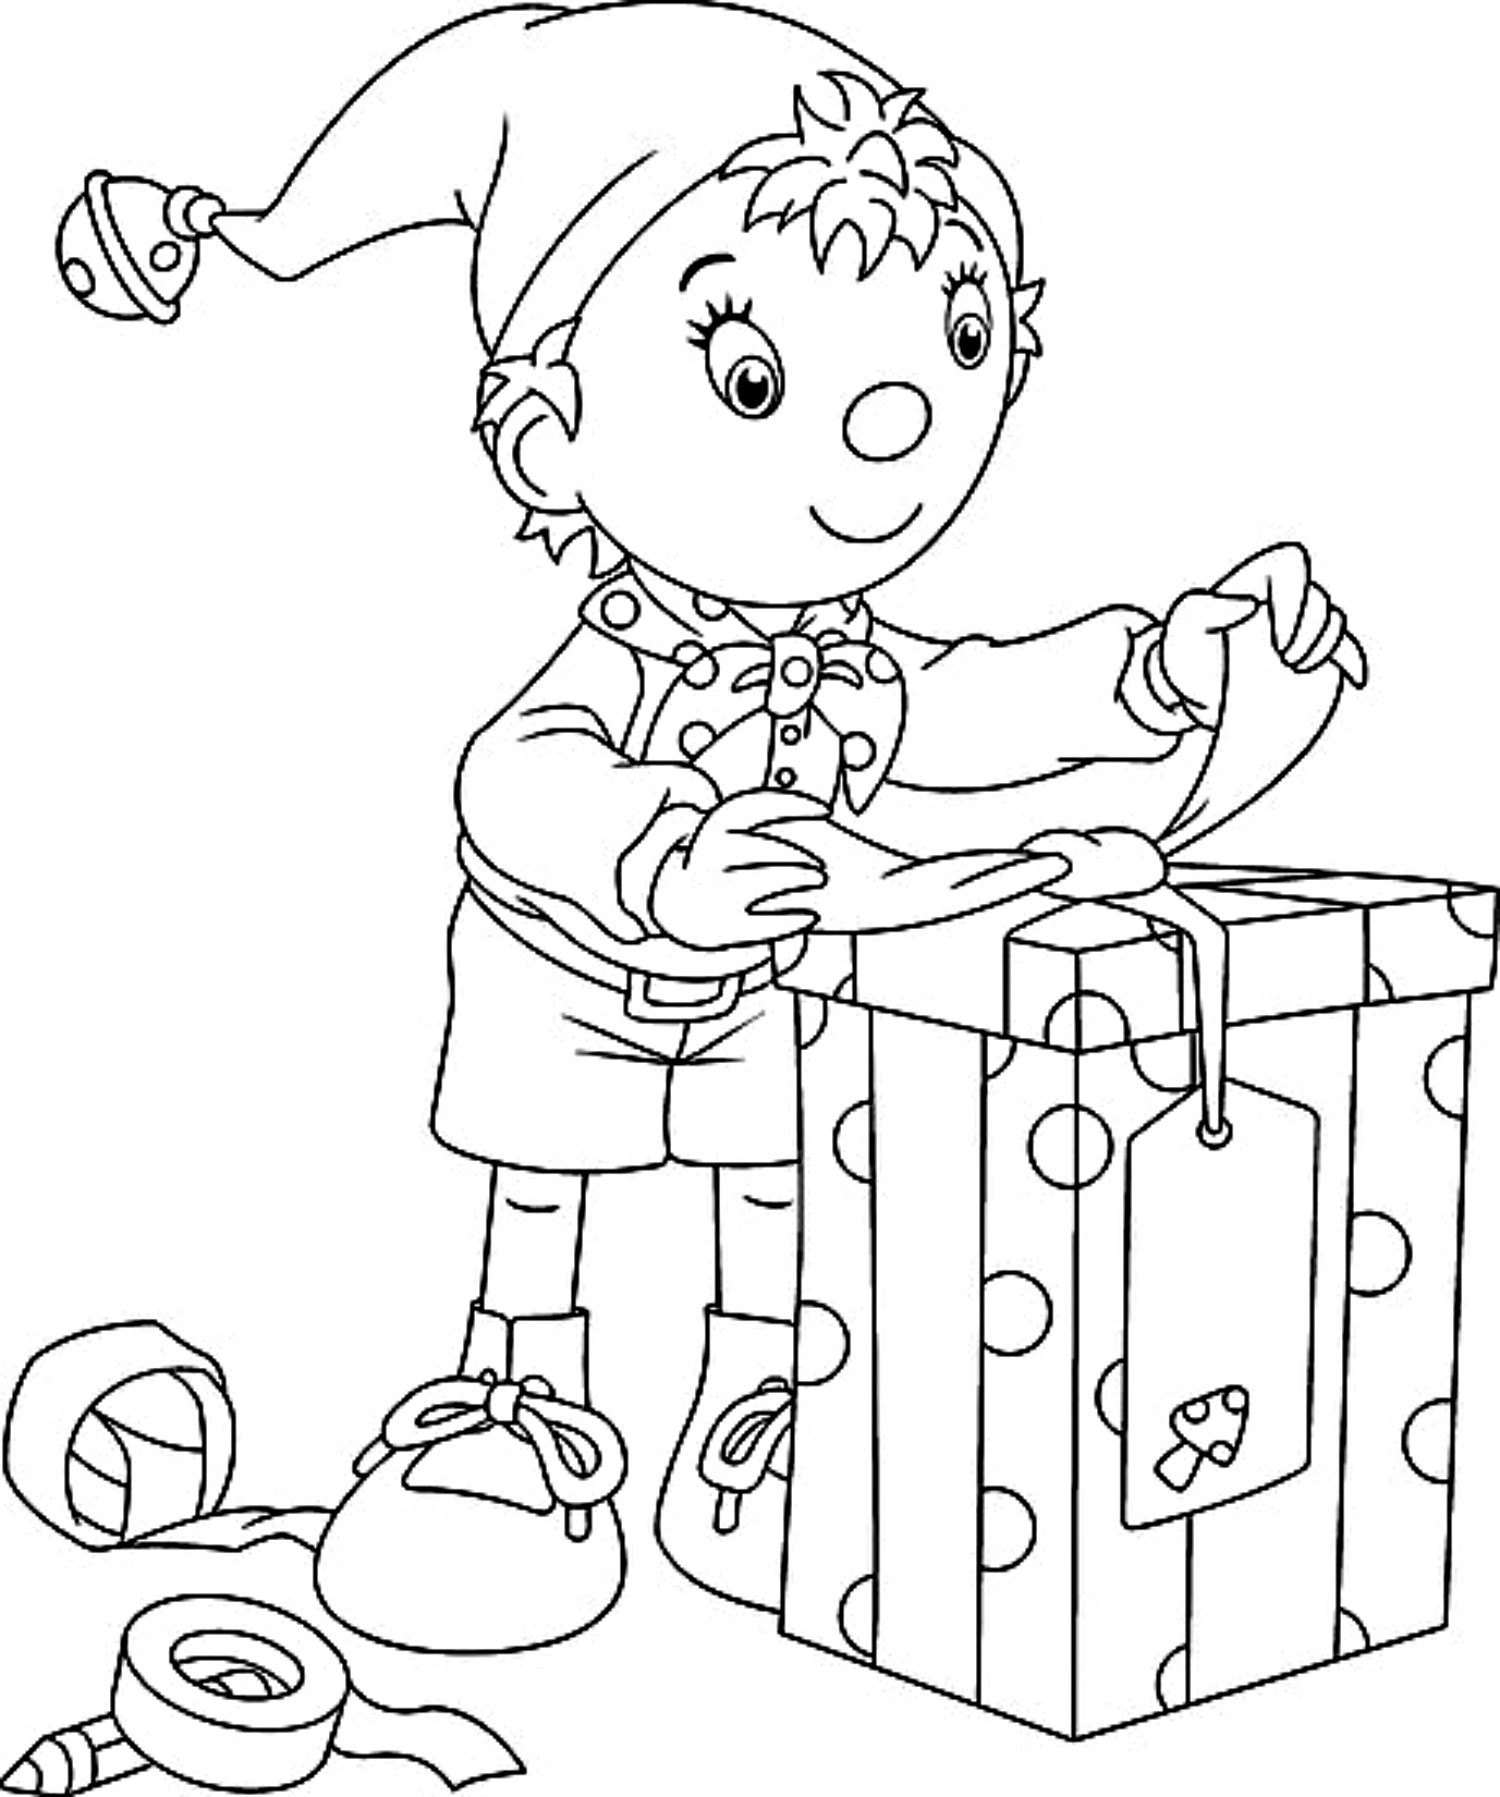 Free Christmas Coloring Pages For Kids  Free Printable Kindergarten Coloring Pages For Kids